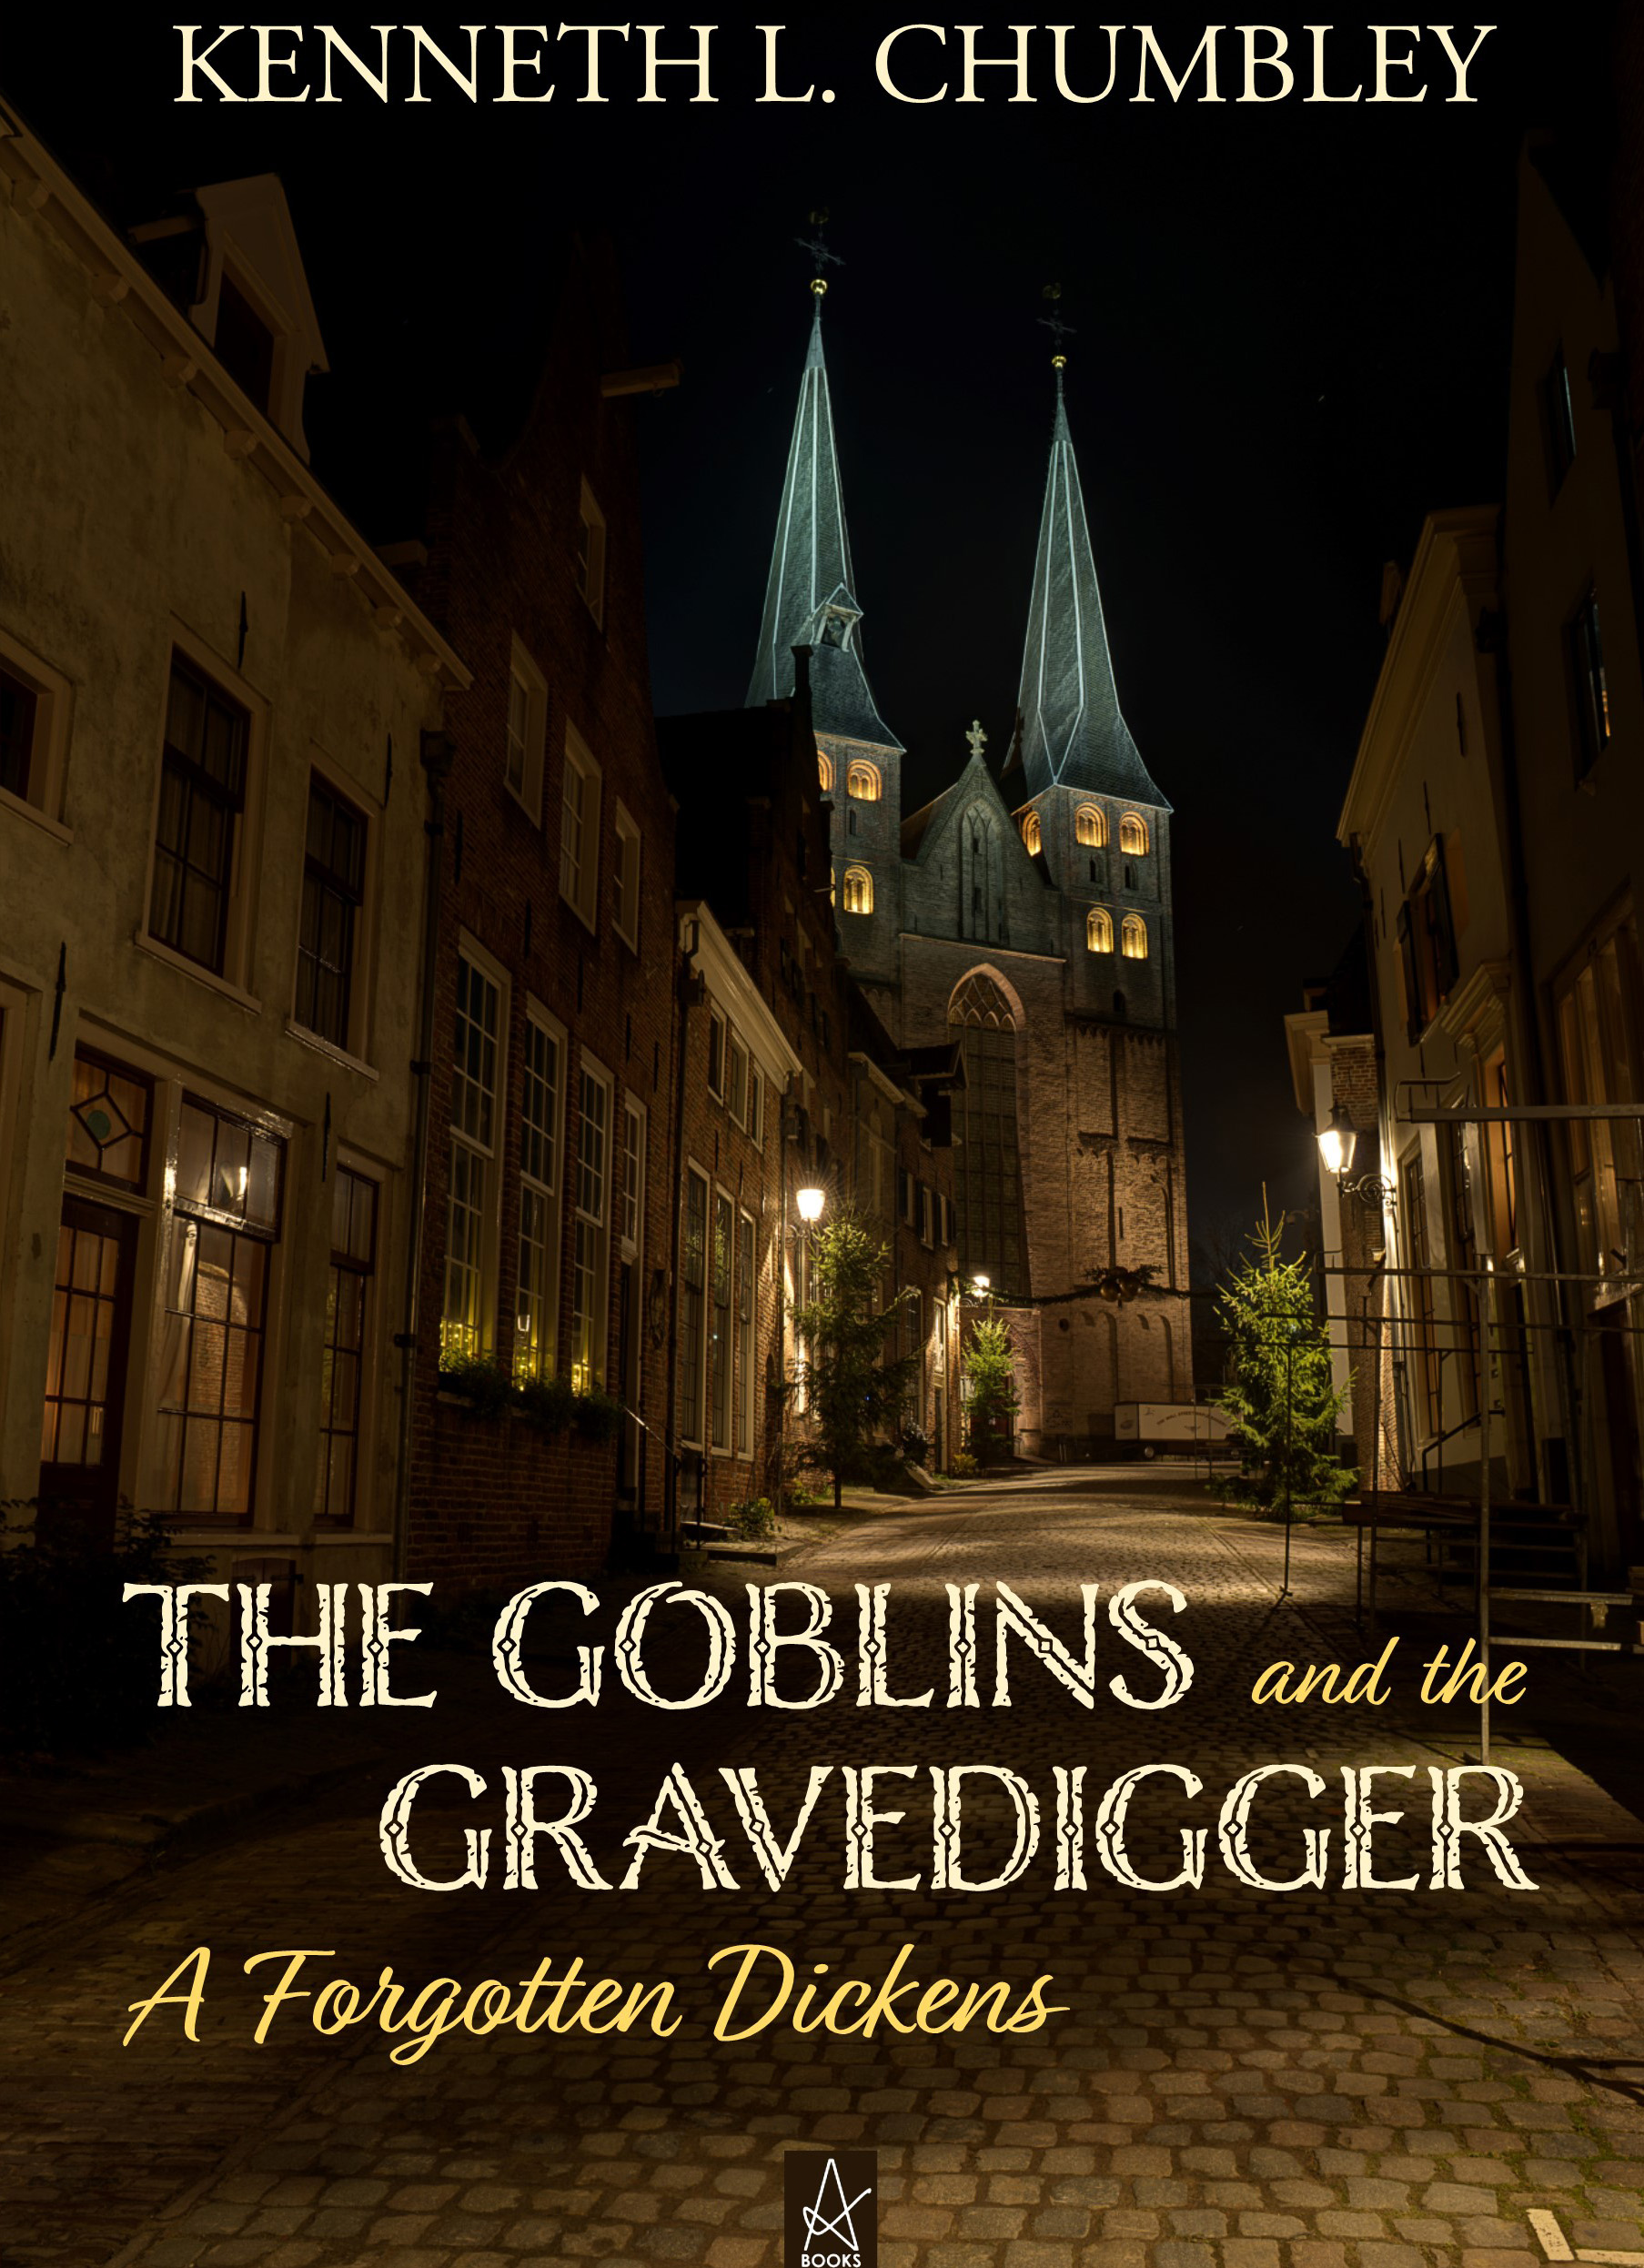 The Goblins and the Gravedigger, a forgotten Dickens